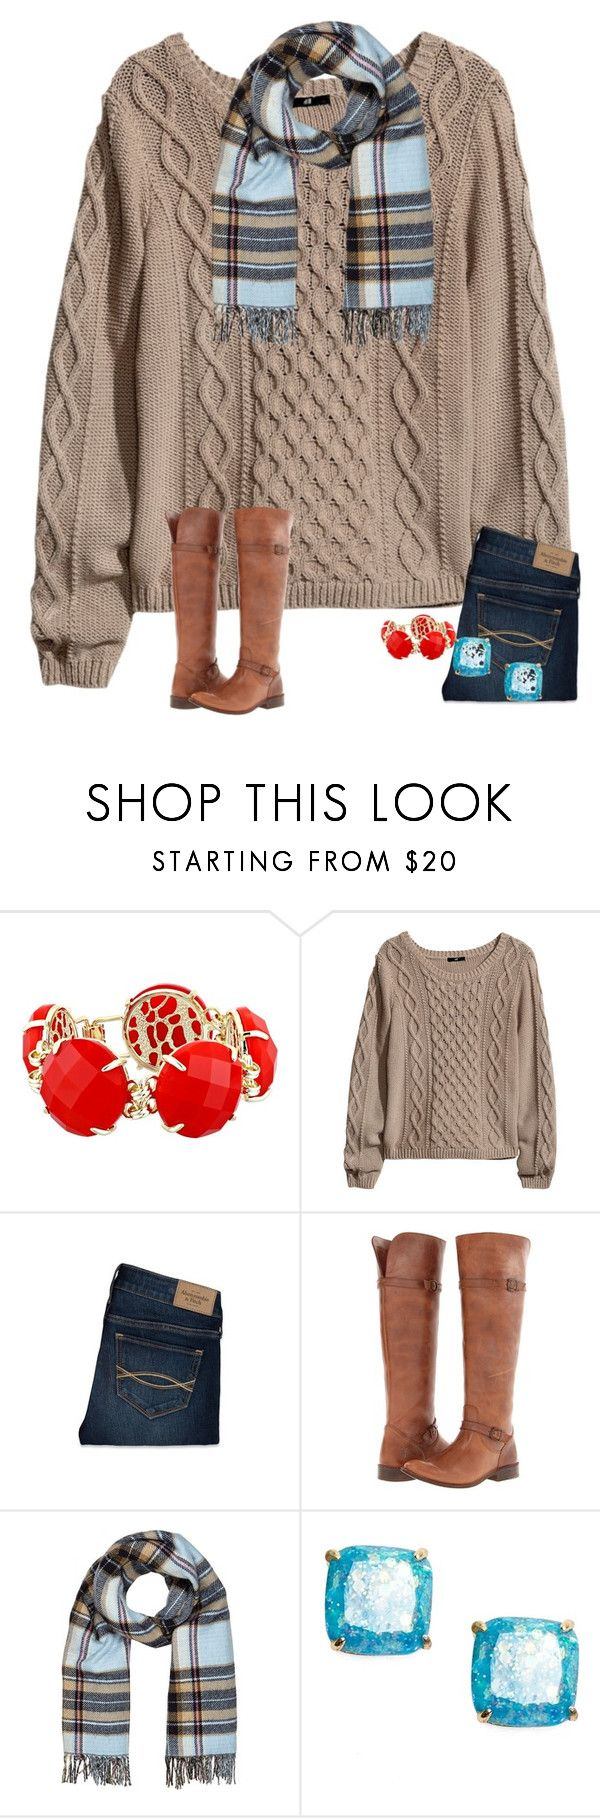 """""""Heir"""" by margarethanff ❤ liked on Polyvore featuring Kendra Scott, H&M, Abercrombie & Fitch, Frye, River Island and Kate Spade"""